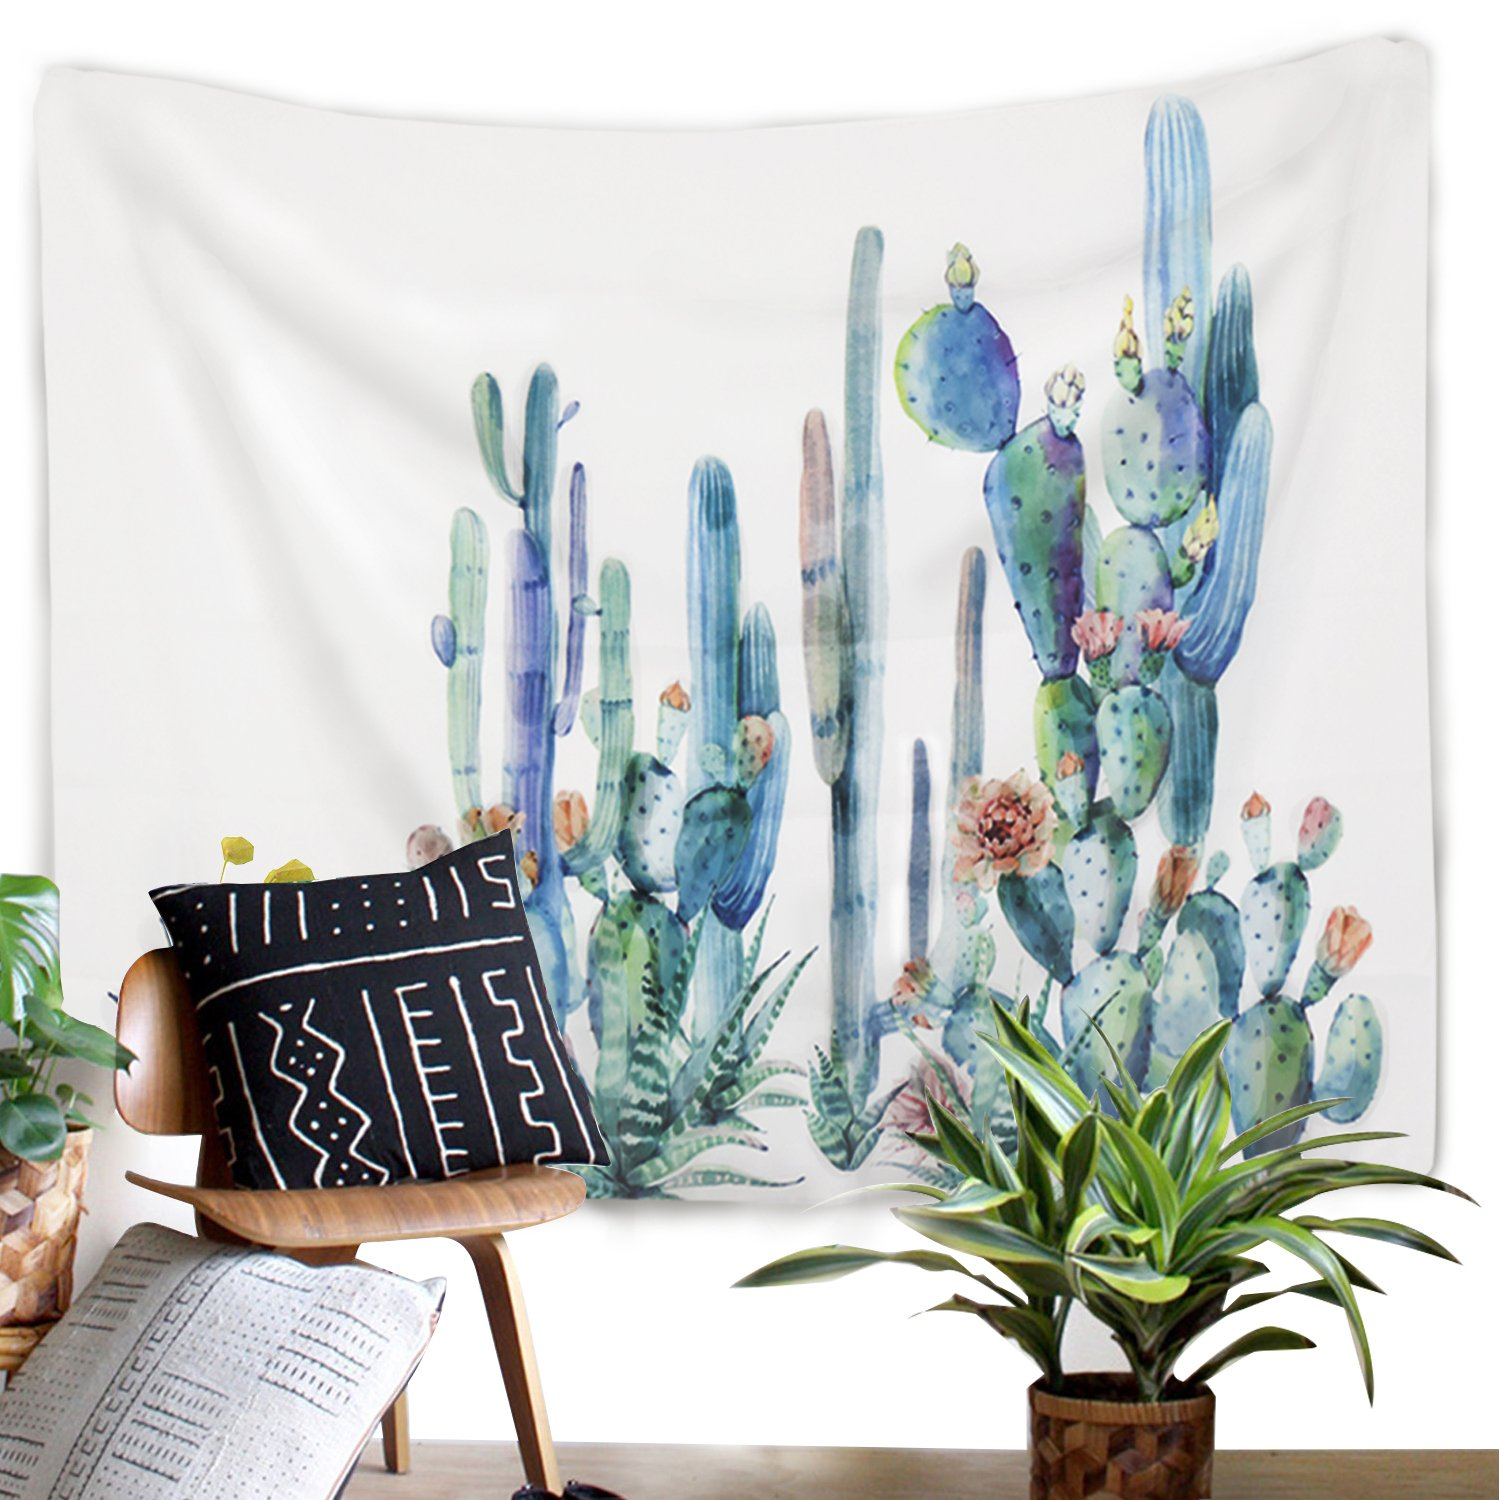 Sunm Boutique Cactus Landscape Tapestry Wall Hanging Cactus Plant Printed Tapestry Cactus Watercolor Tapestry Cactus Wall Tapestry Jonefly